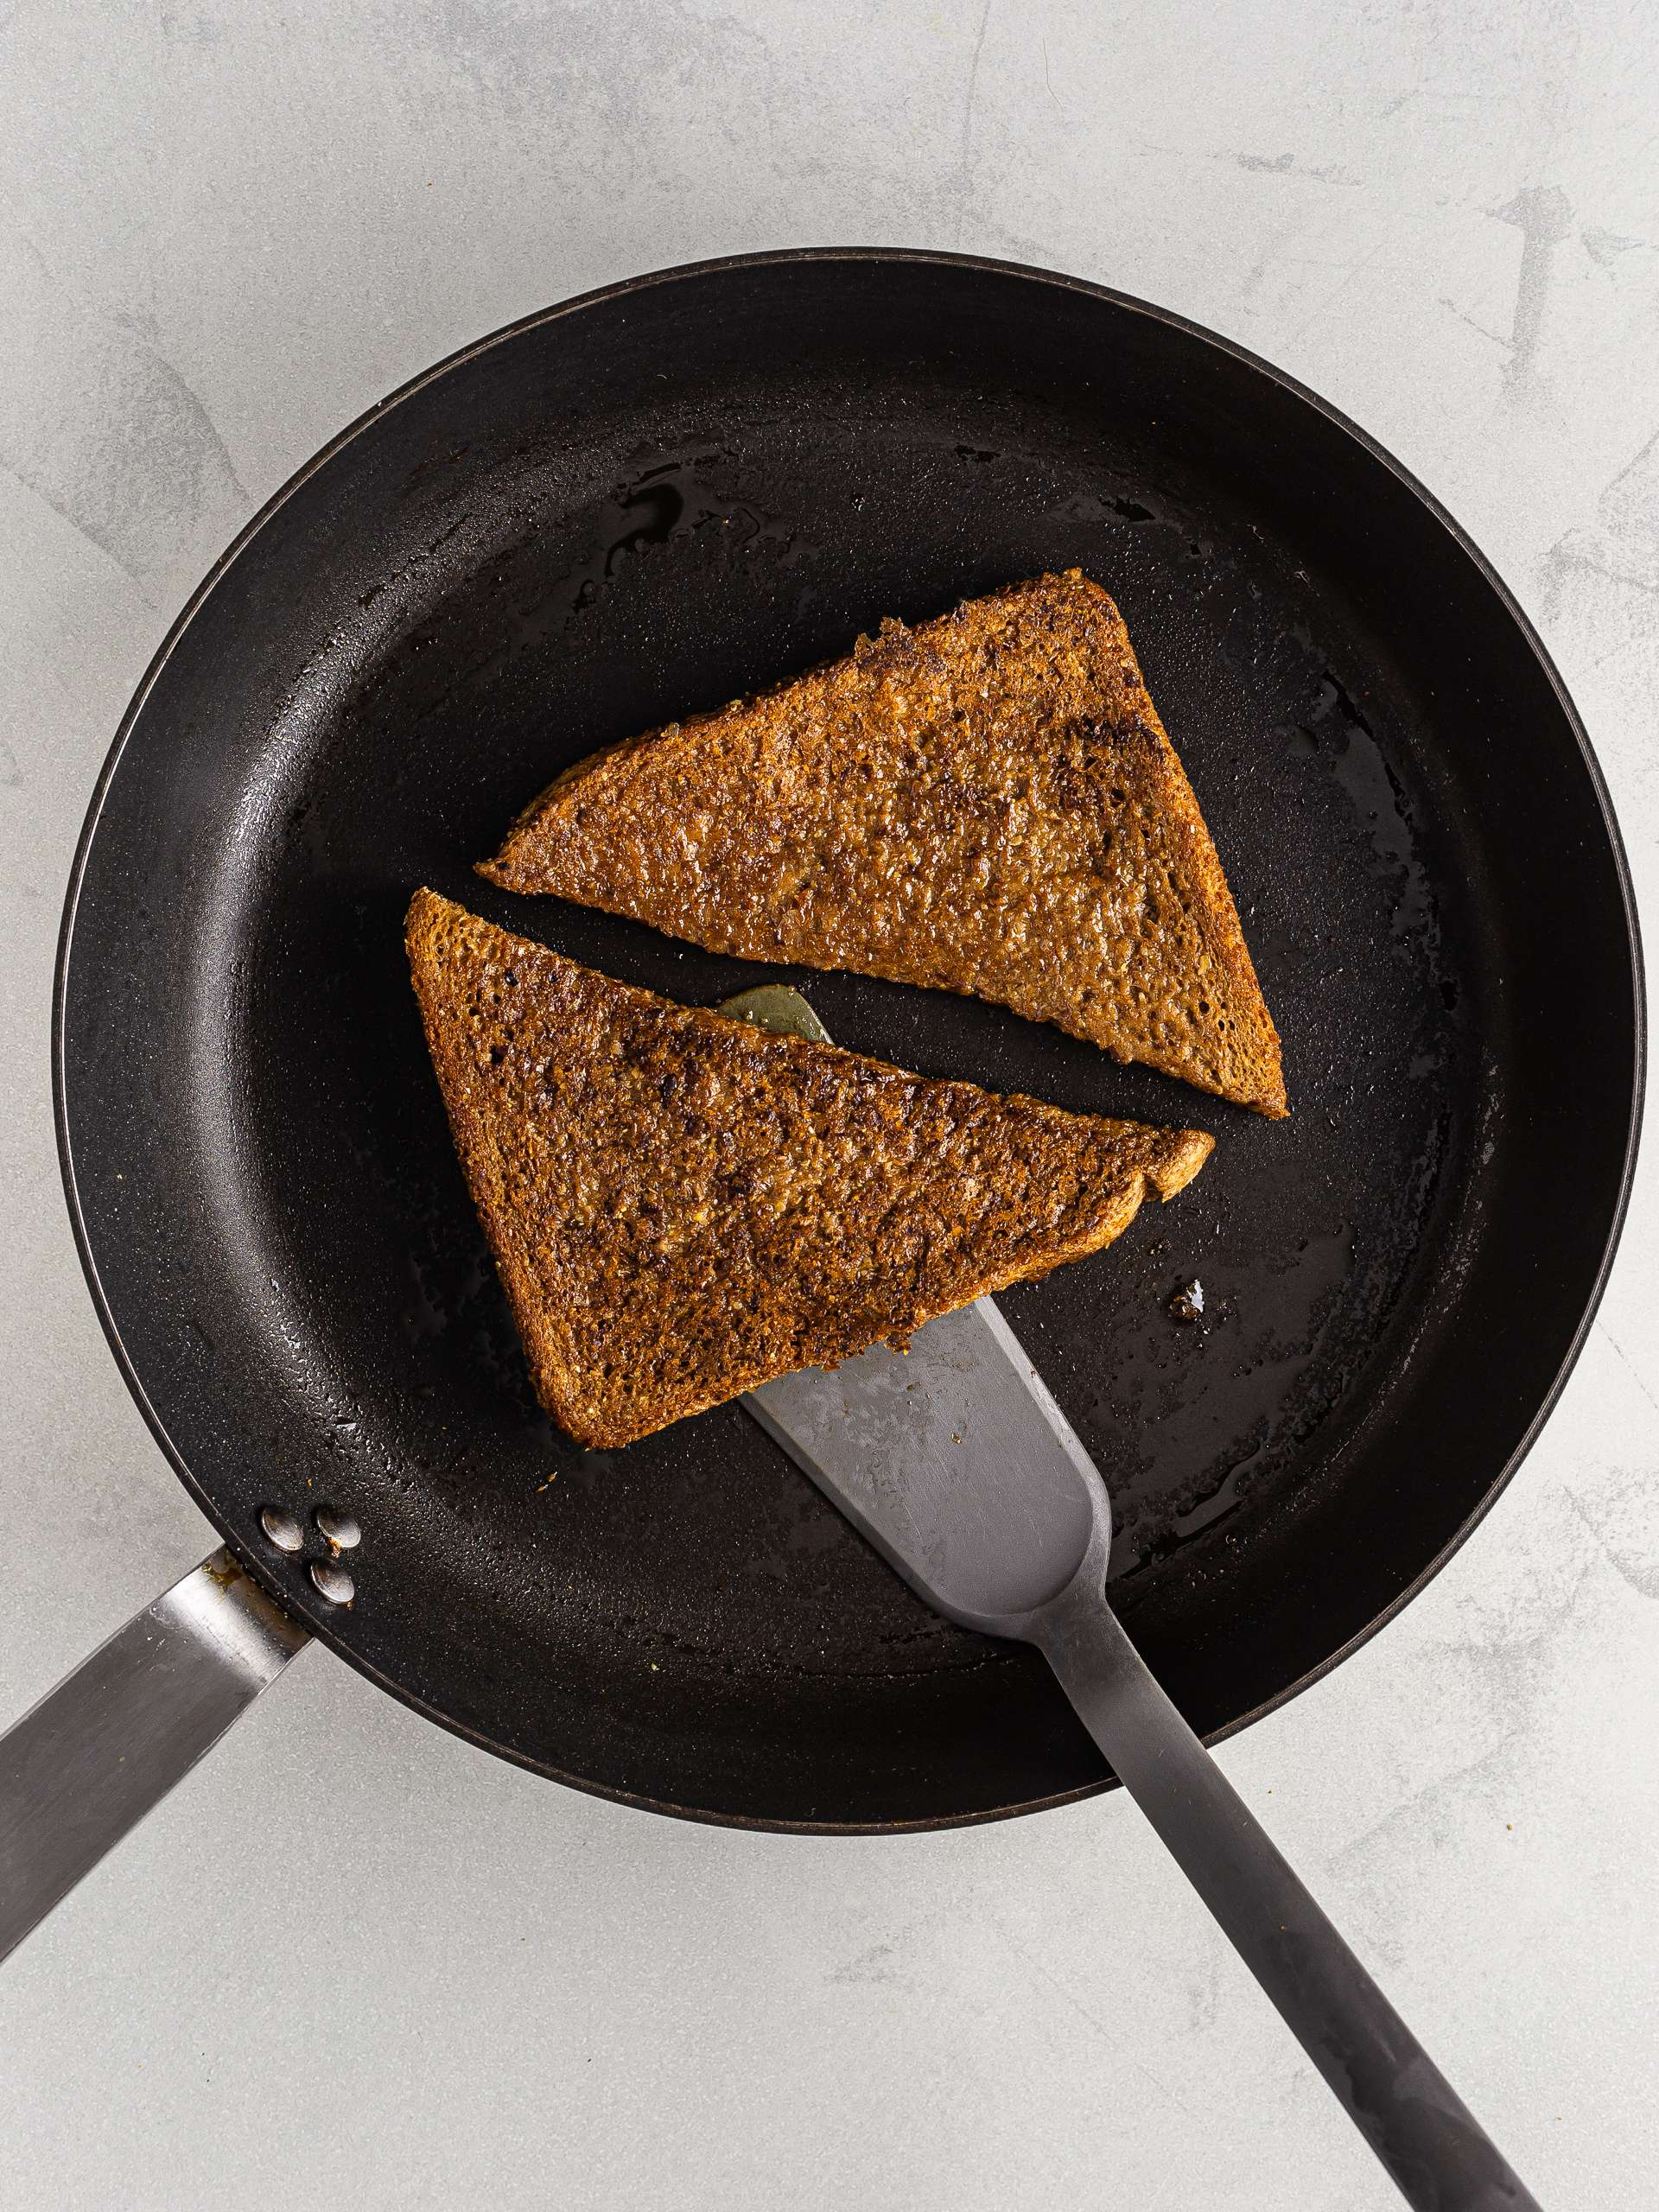 vegan coffee french toast cooked in a skillet